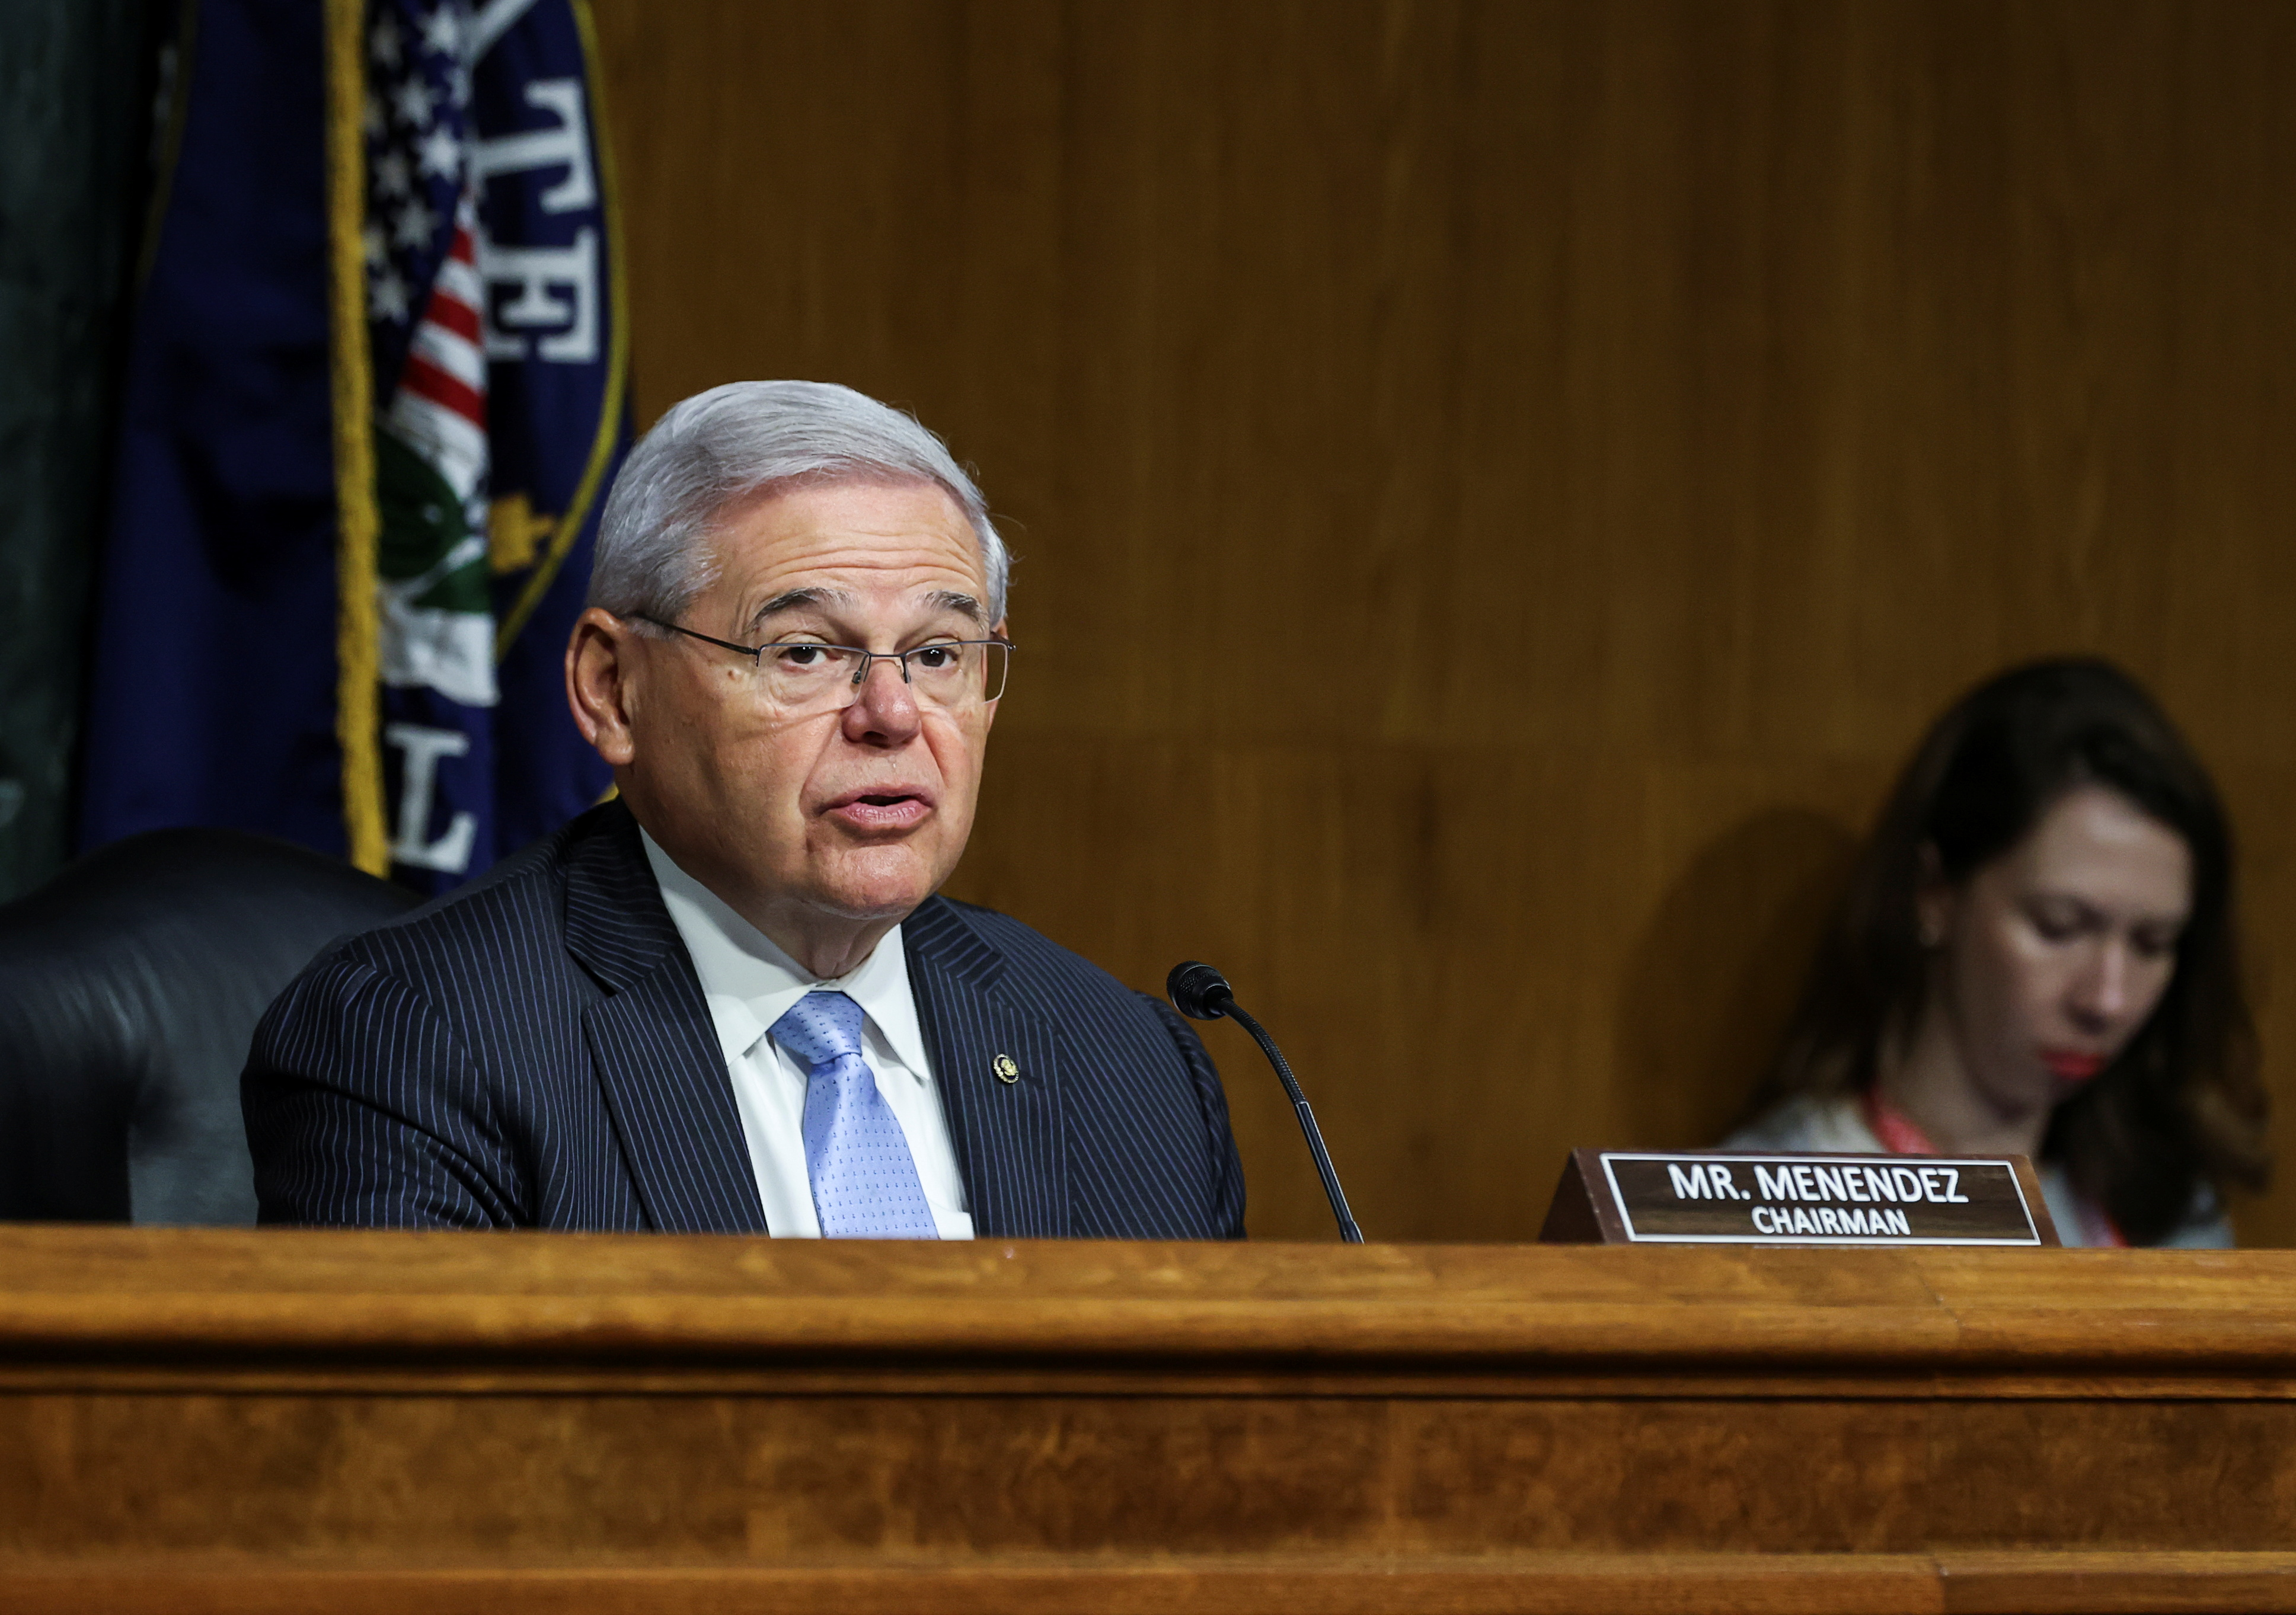 Senate Foreign Relations Committee Charirman Bob Menendez (D-NJ) presides at a Senate Foreign Relations Committee hearing on